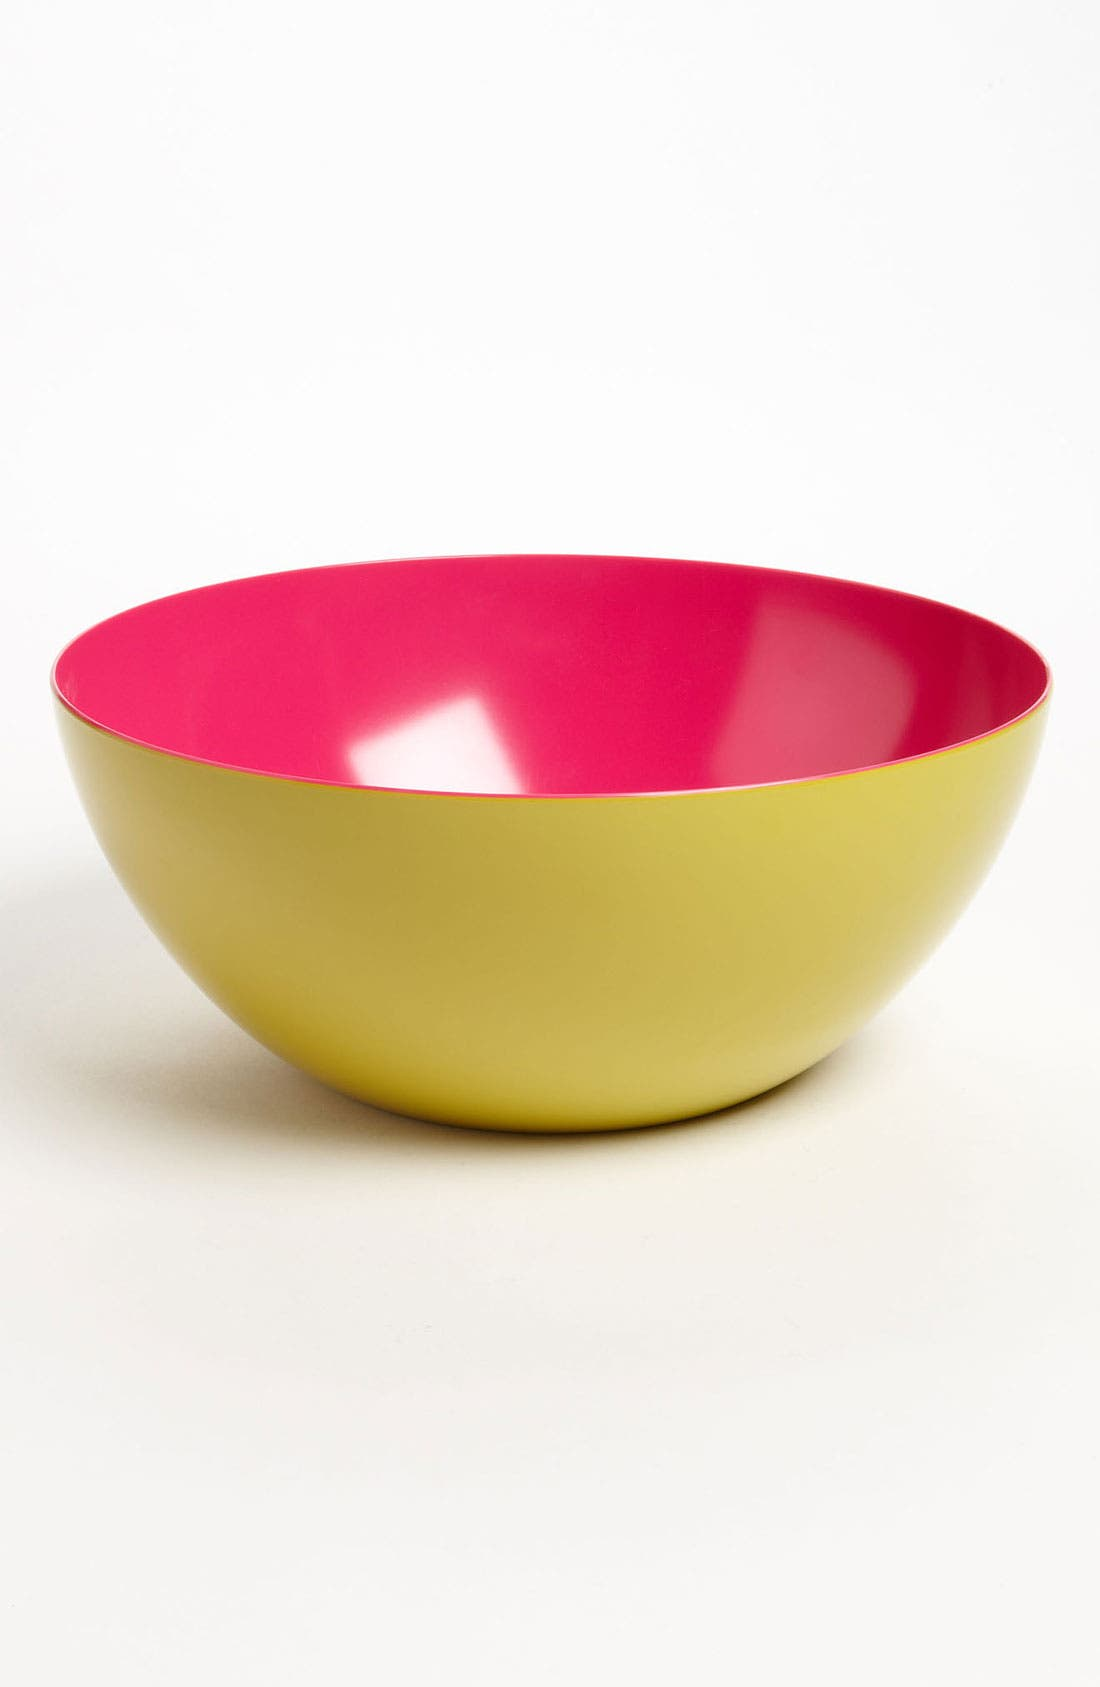 Main Image - Jonathan Adler 'Positano' Serving Bowl